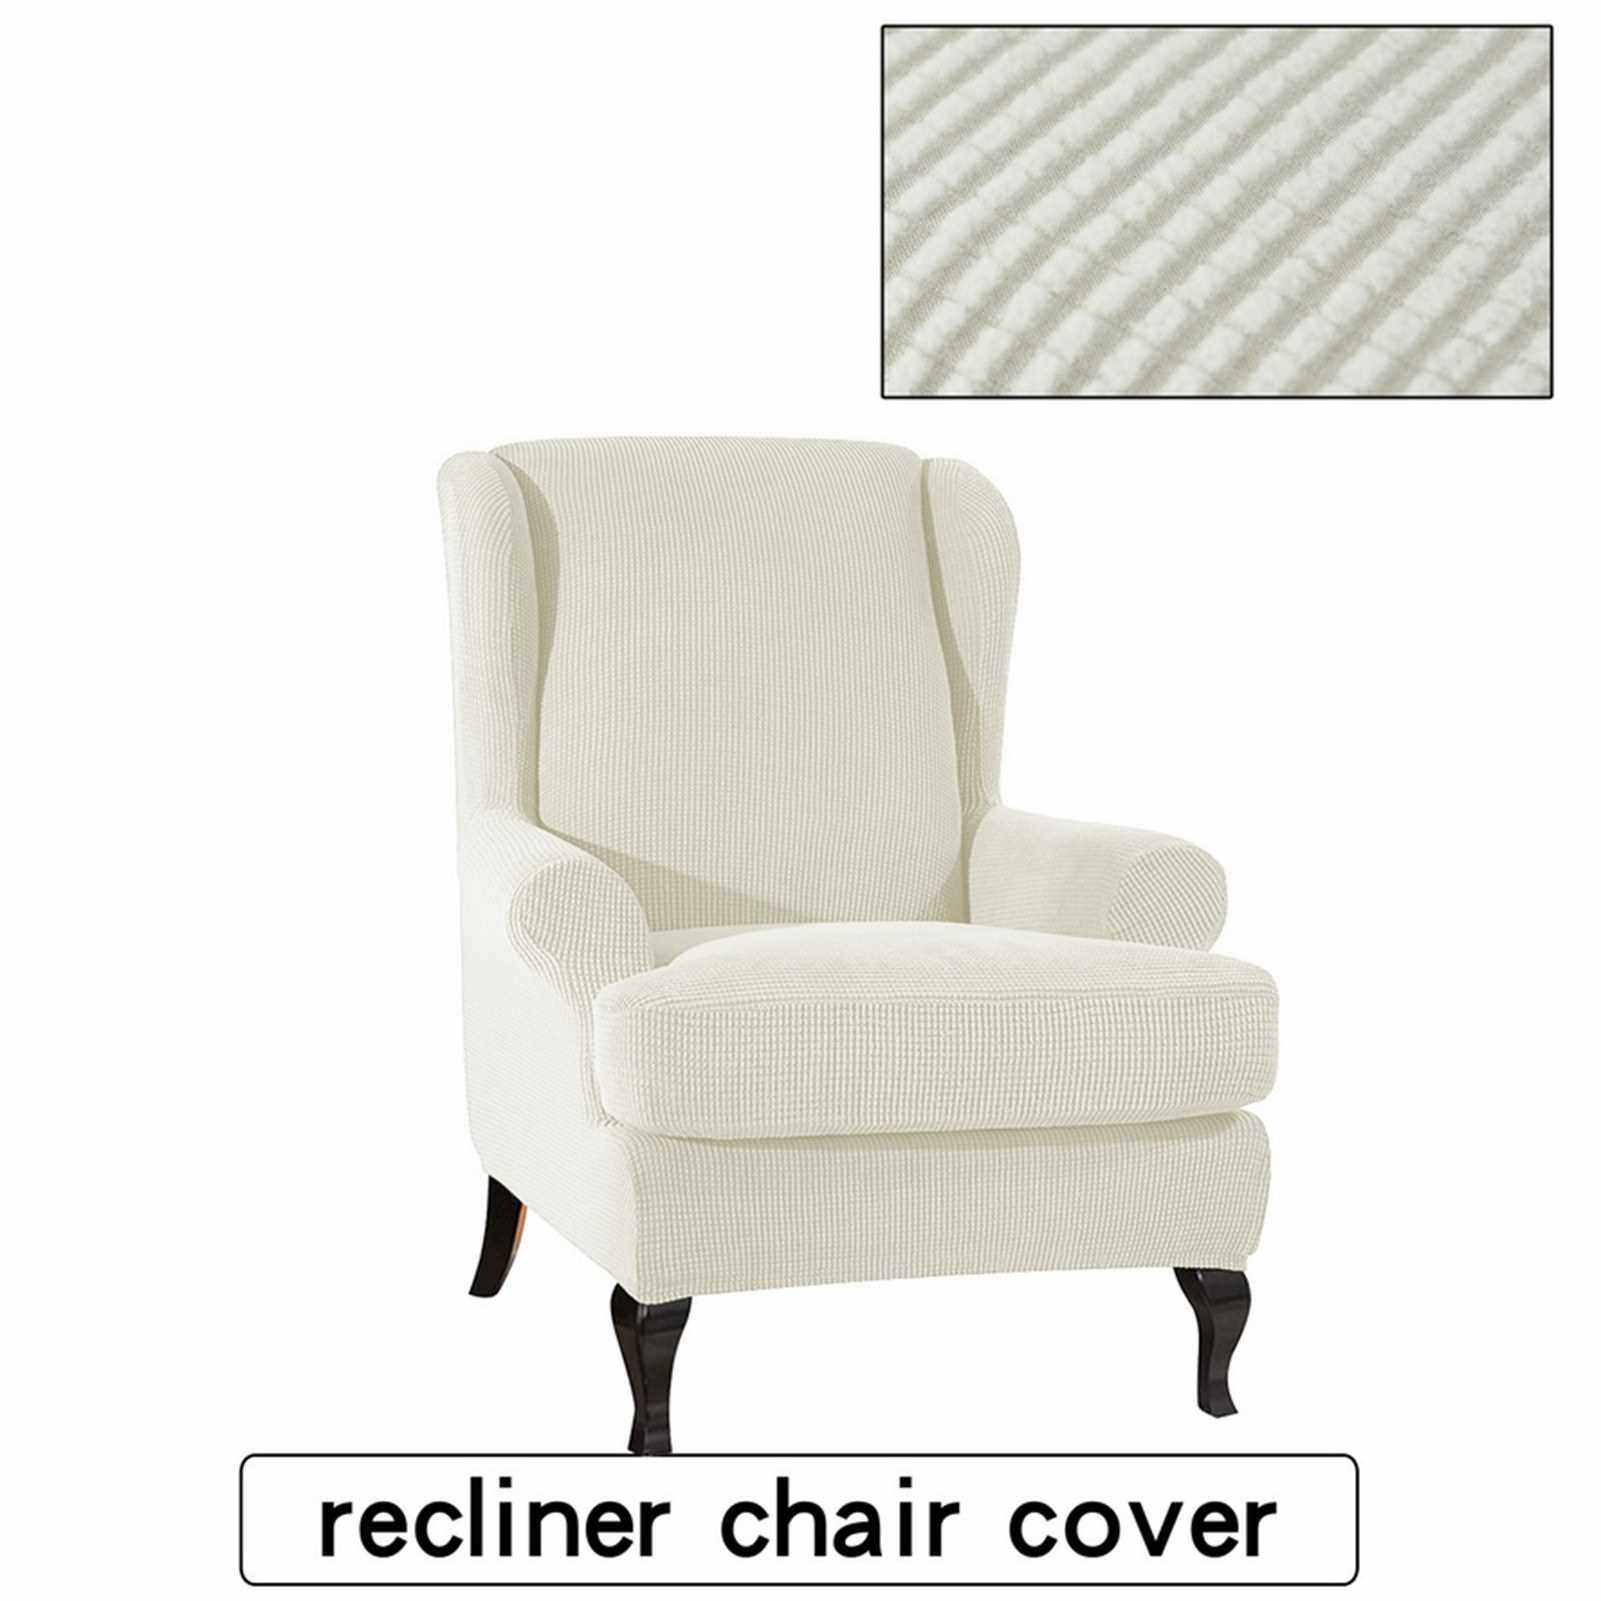 Sofa Covers Wing Chair Elastic Fabric Stretch Couch Slipcover Polyester Spandex Furniture Protector (White) (Black)